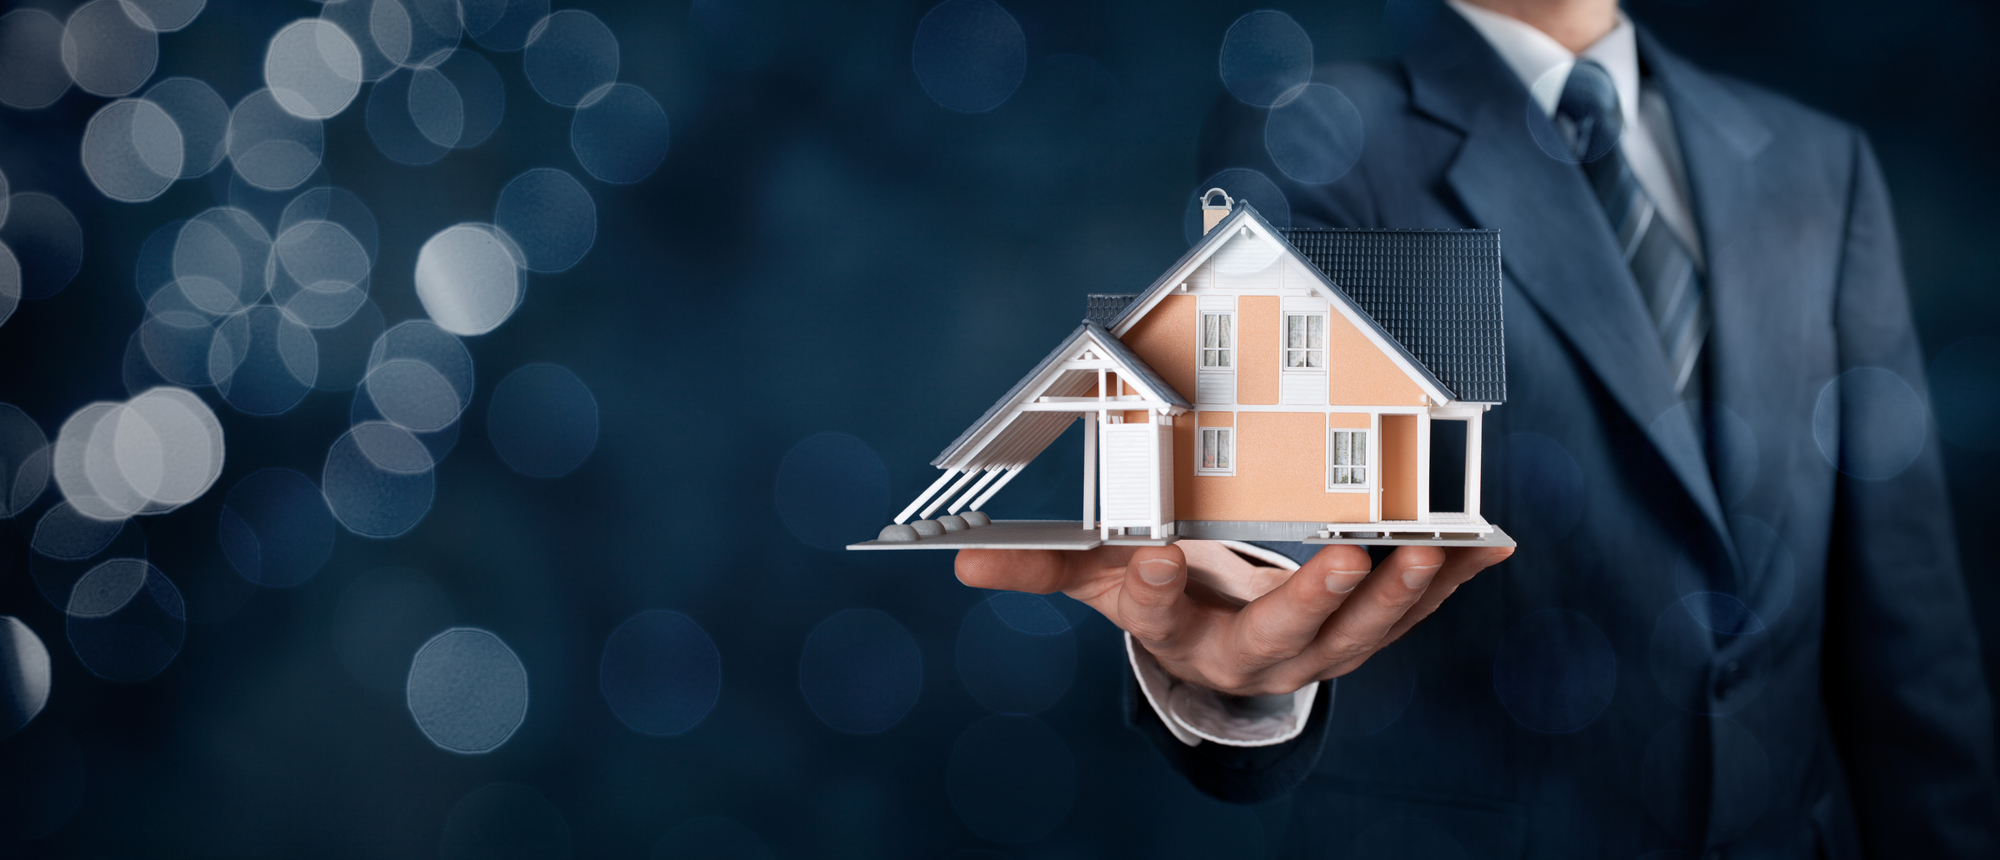 5 Benefits Of A Real Estate License | FortuneBuilders